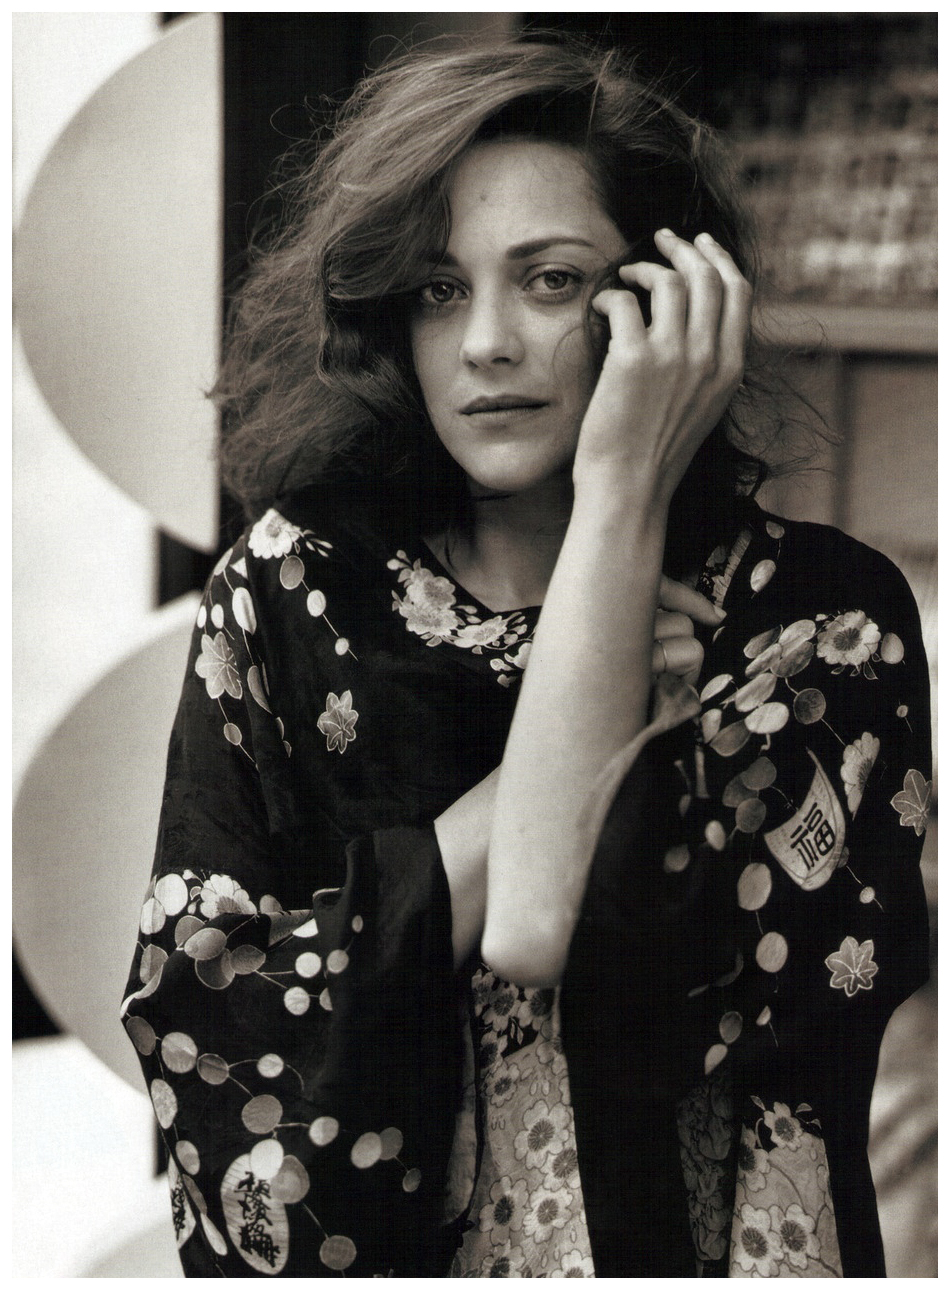 Hacked Marion Cotillard nude (87 photos), Topless, Leaked, Boobs, cameltoe 2019